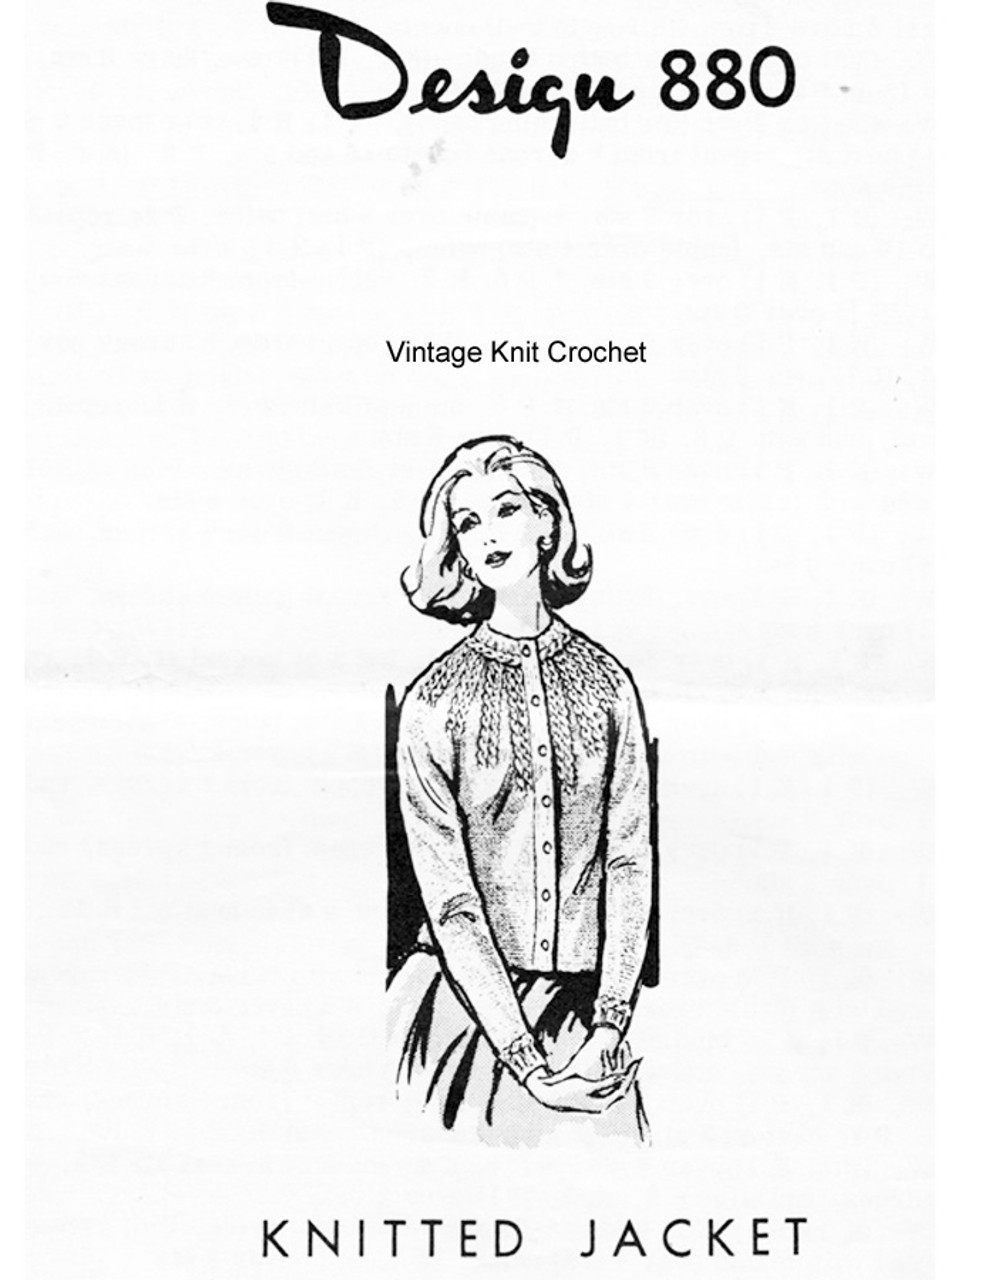 Cable Jacket Knitting Pattern Design 880